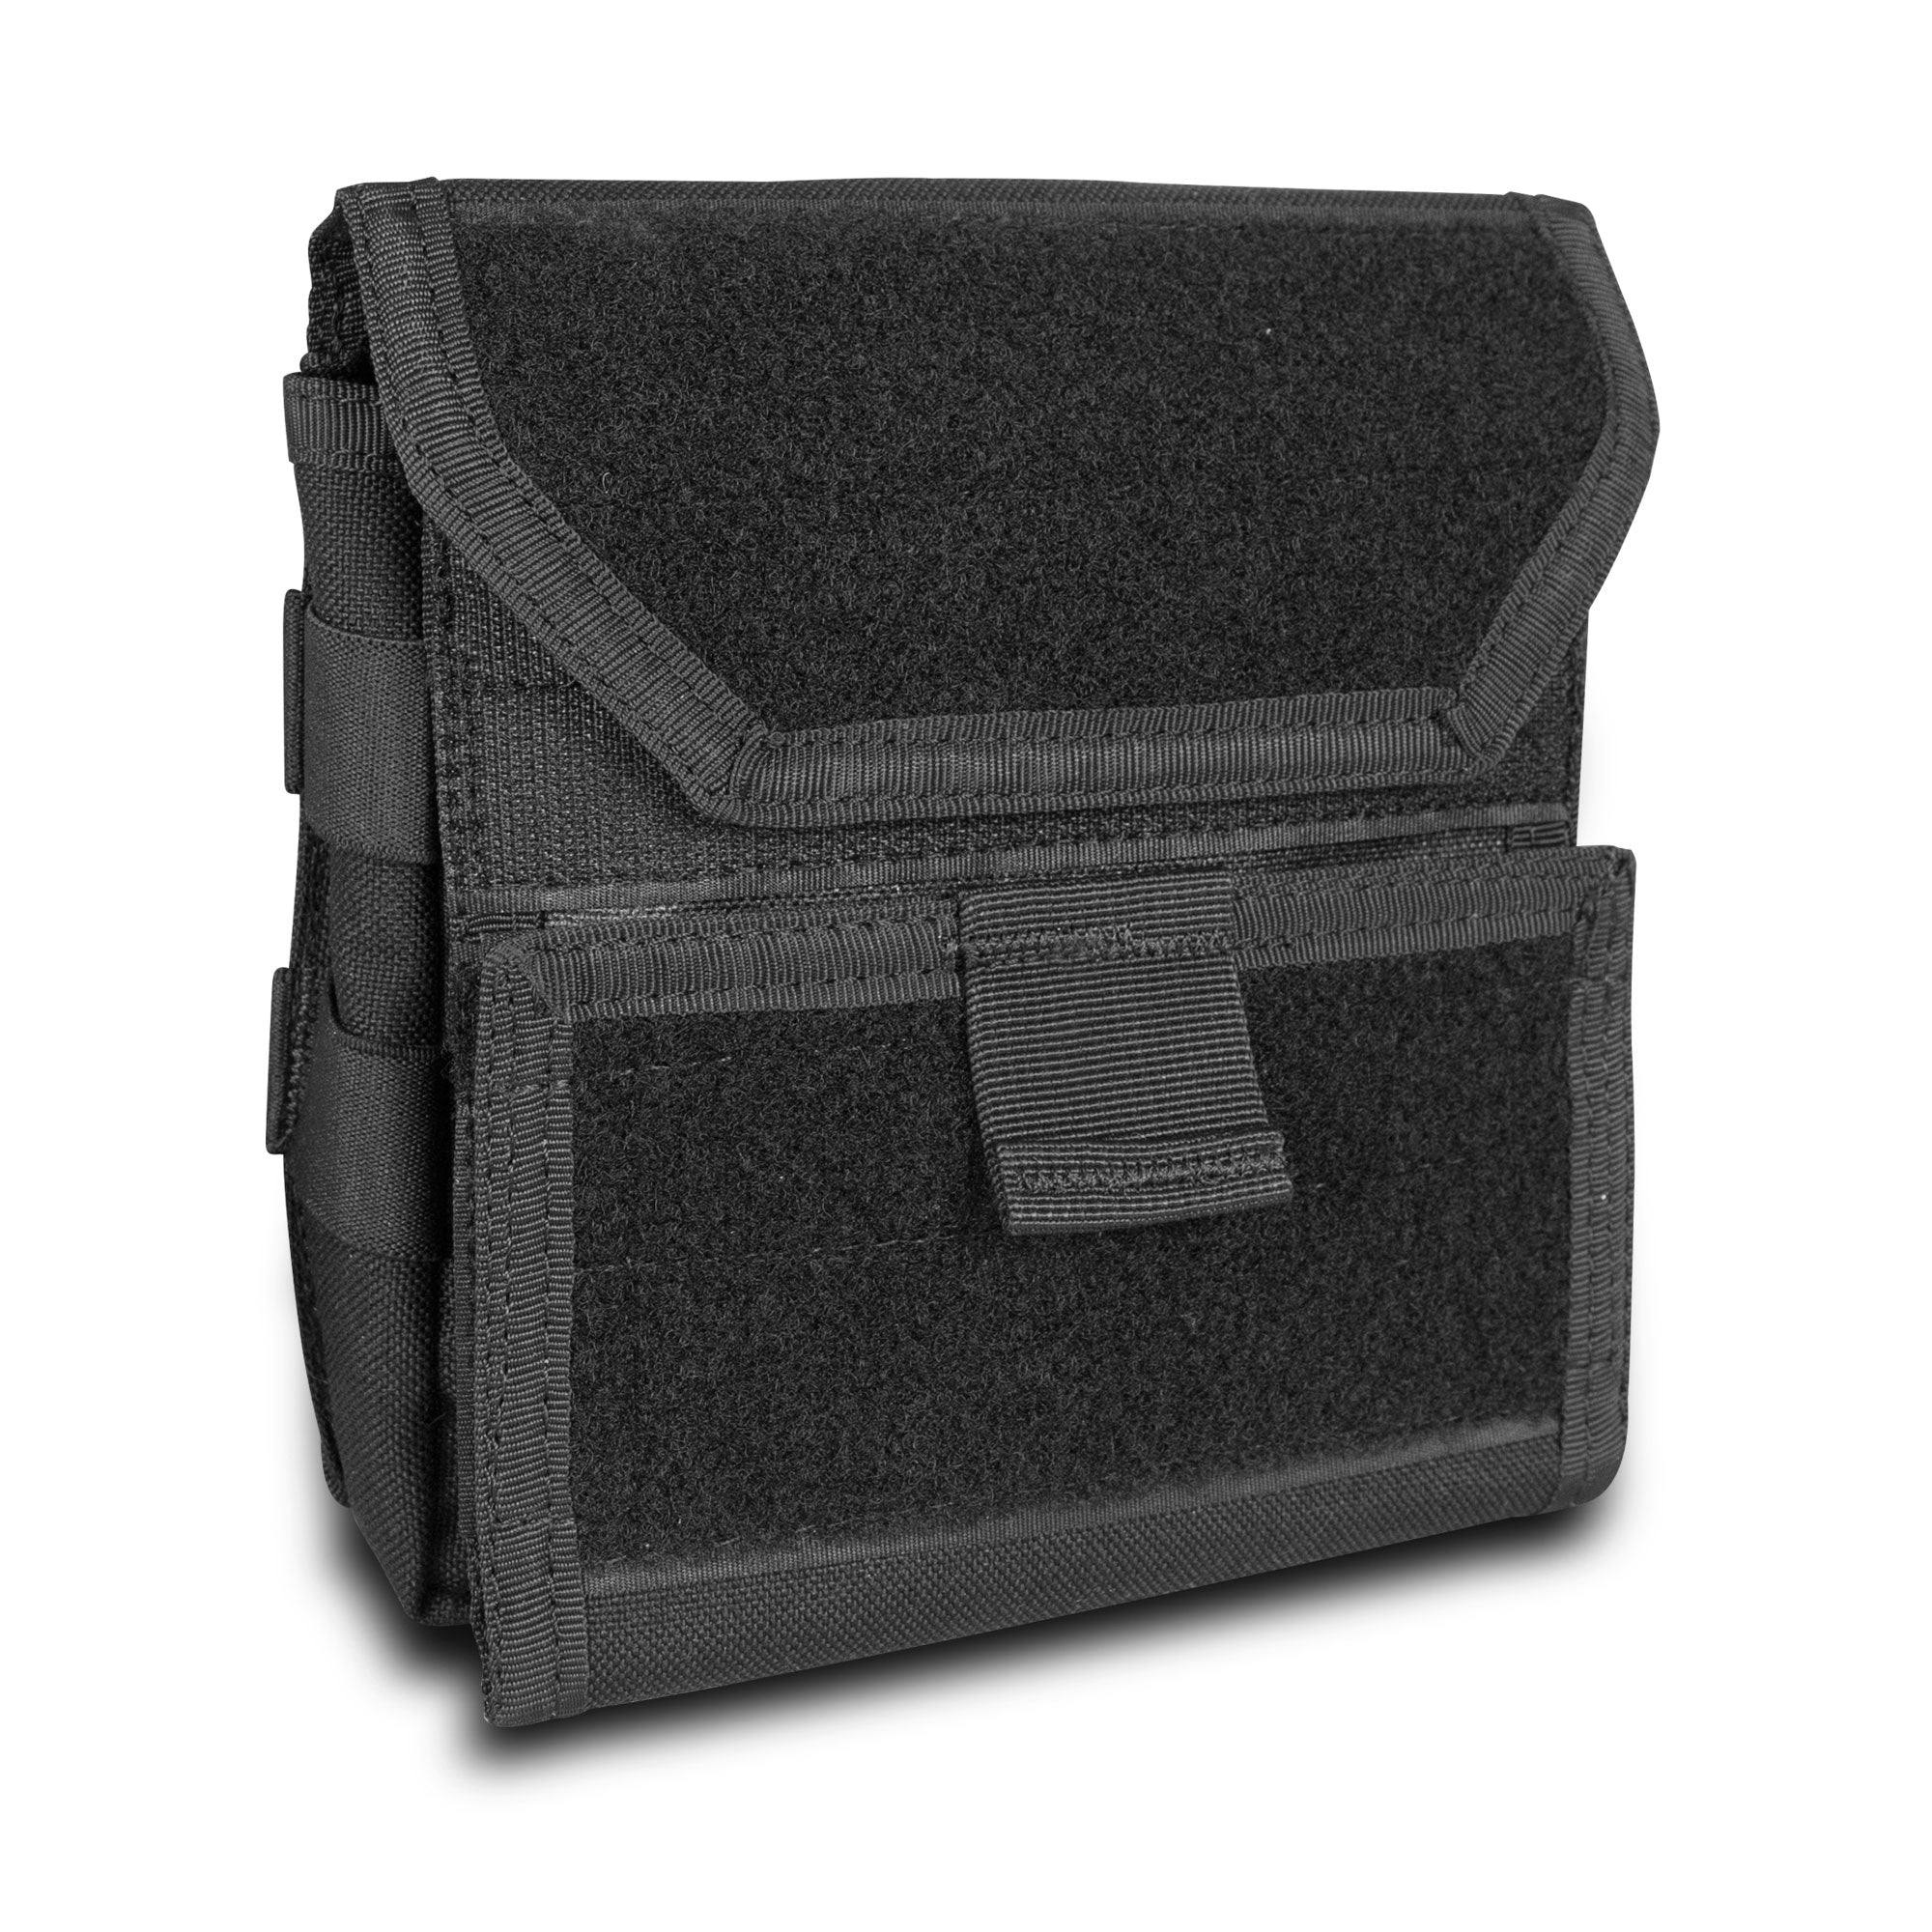 SecPro MOLLE Utility Pouch - Main